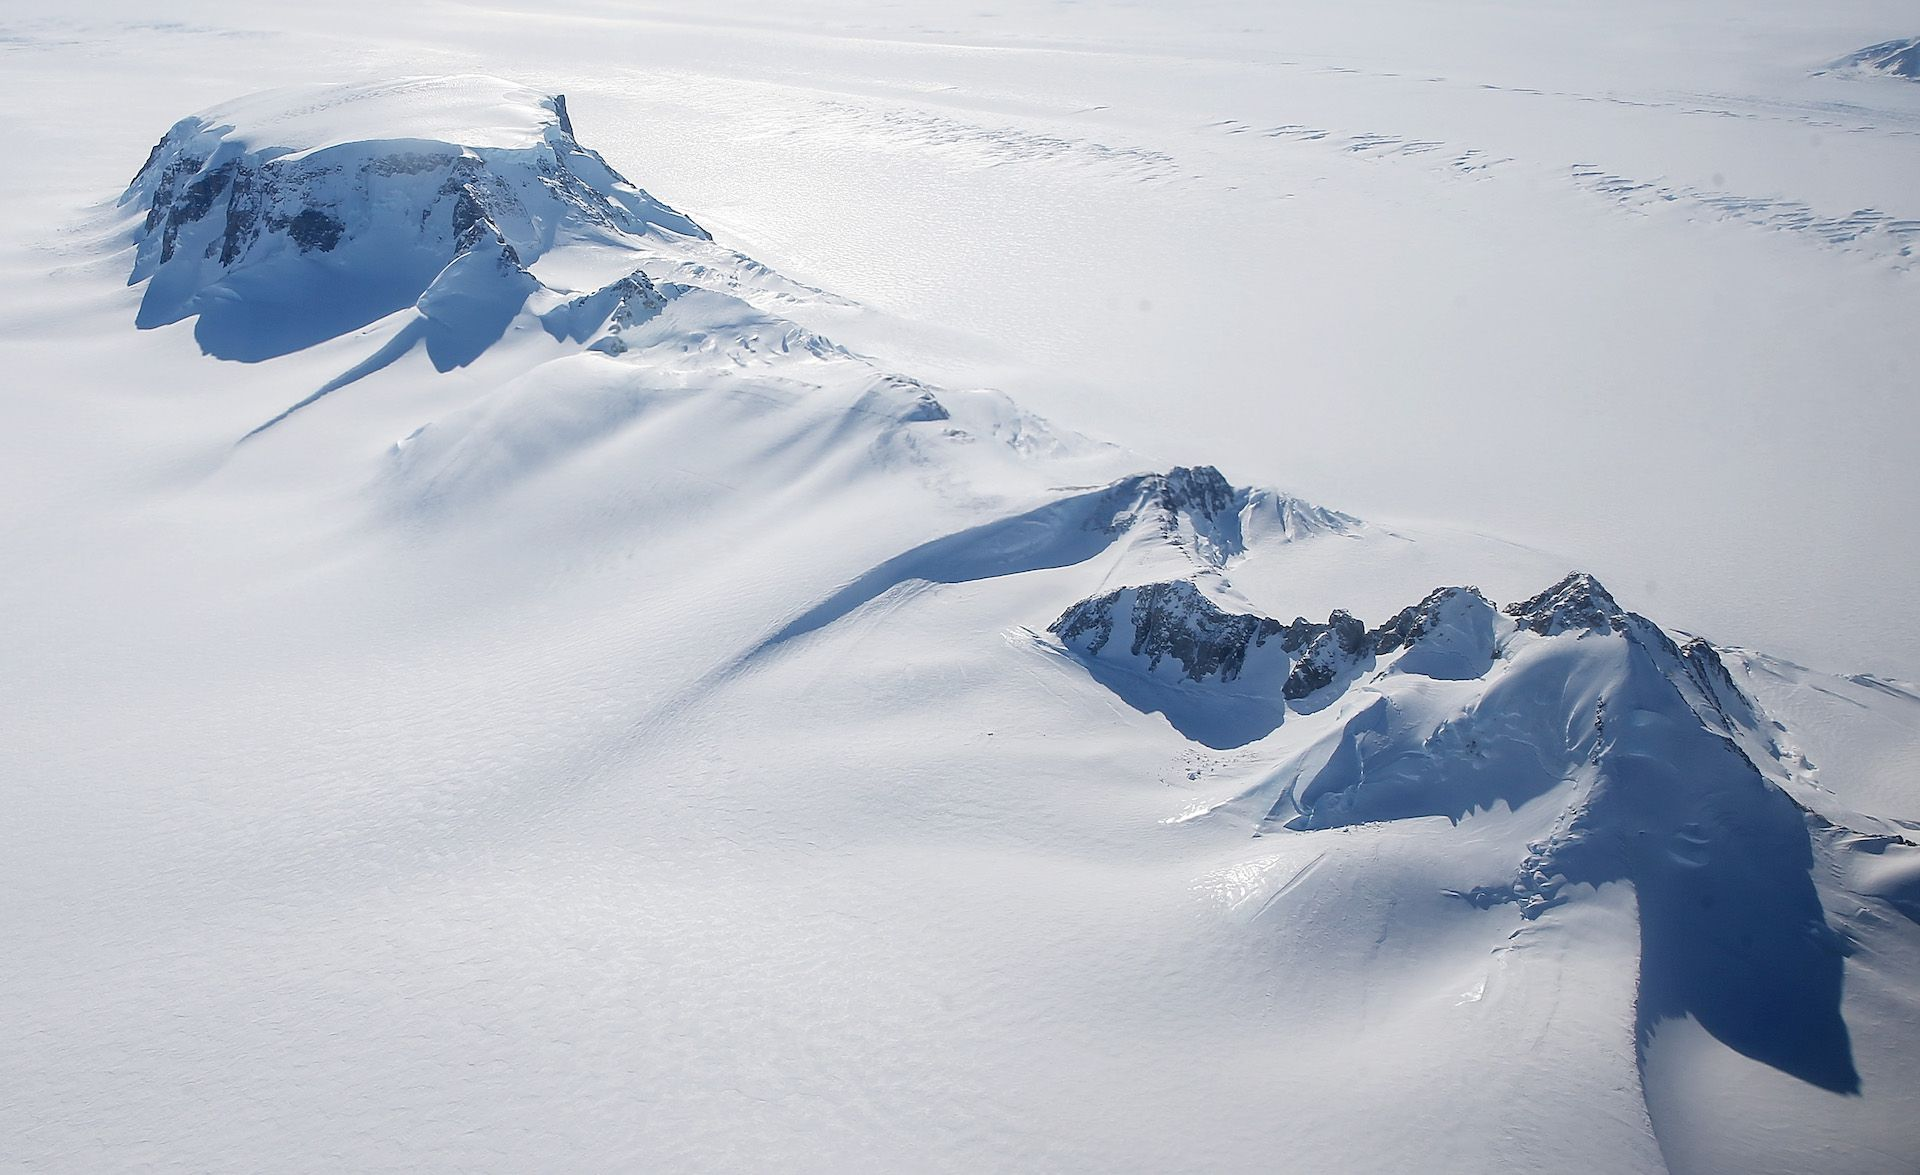 Antarctic ice sheet viewed from the air.